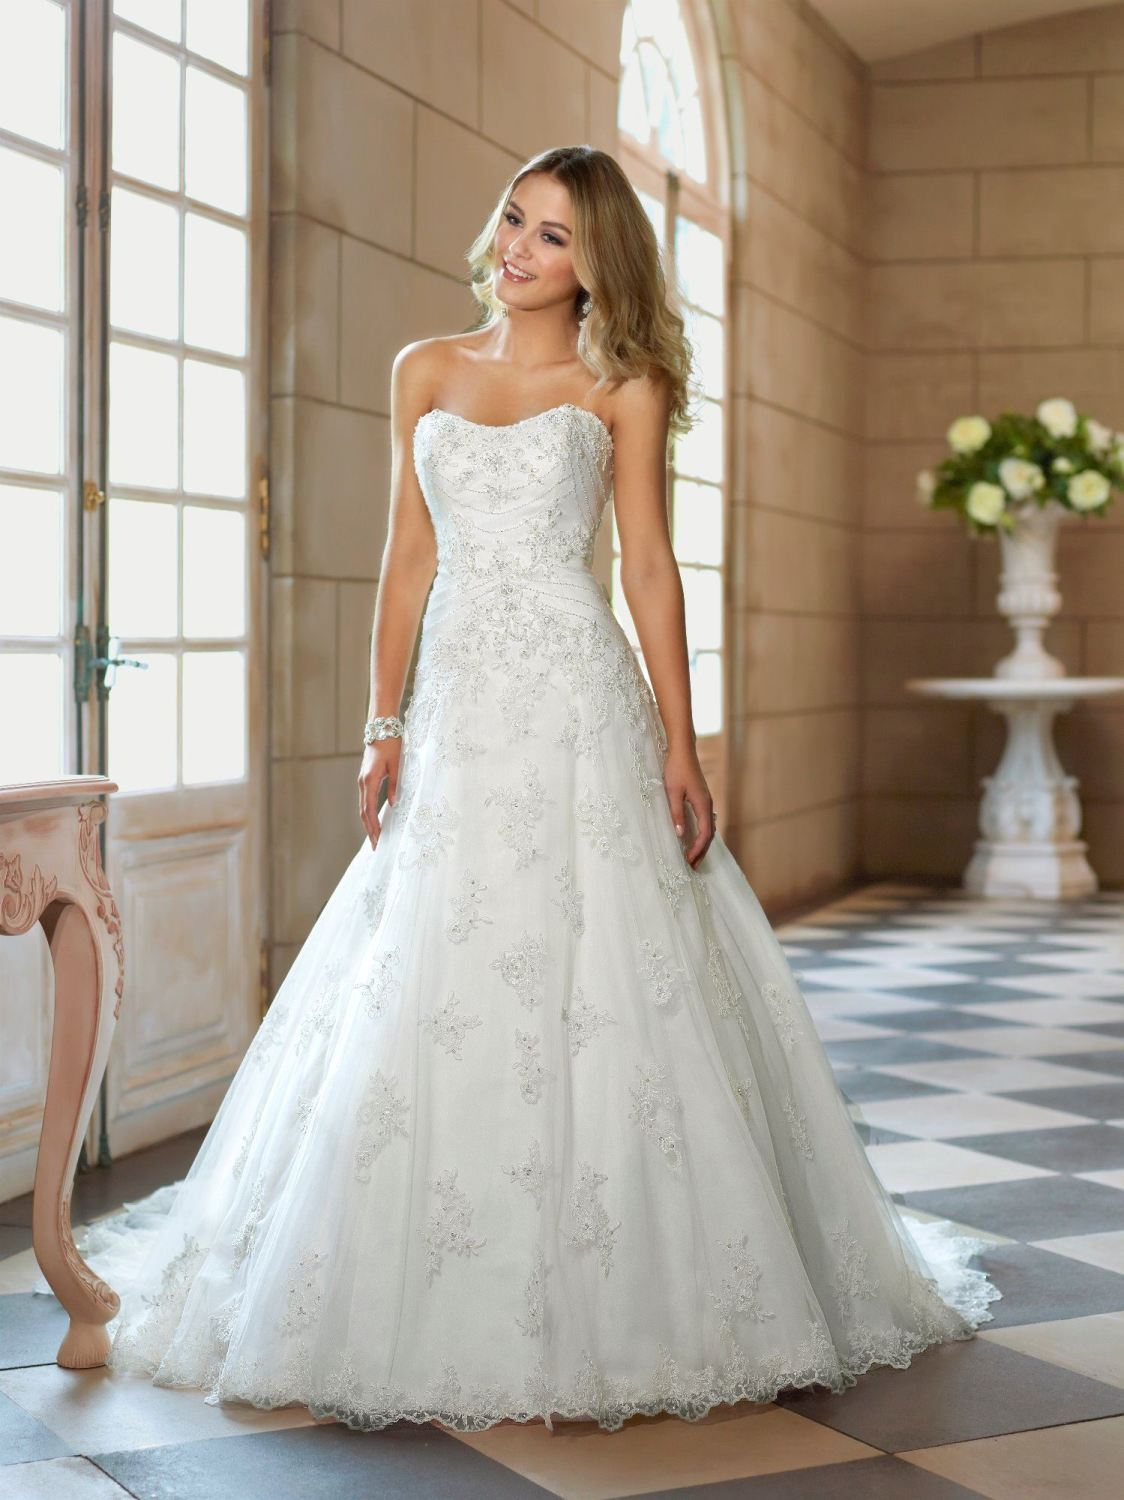 New Stella York Lace A-Line Gown - Style 5756 - Size 14